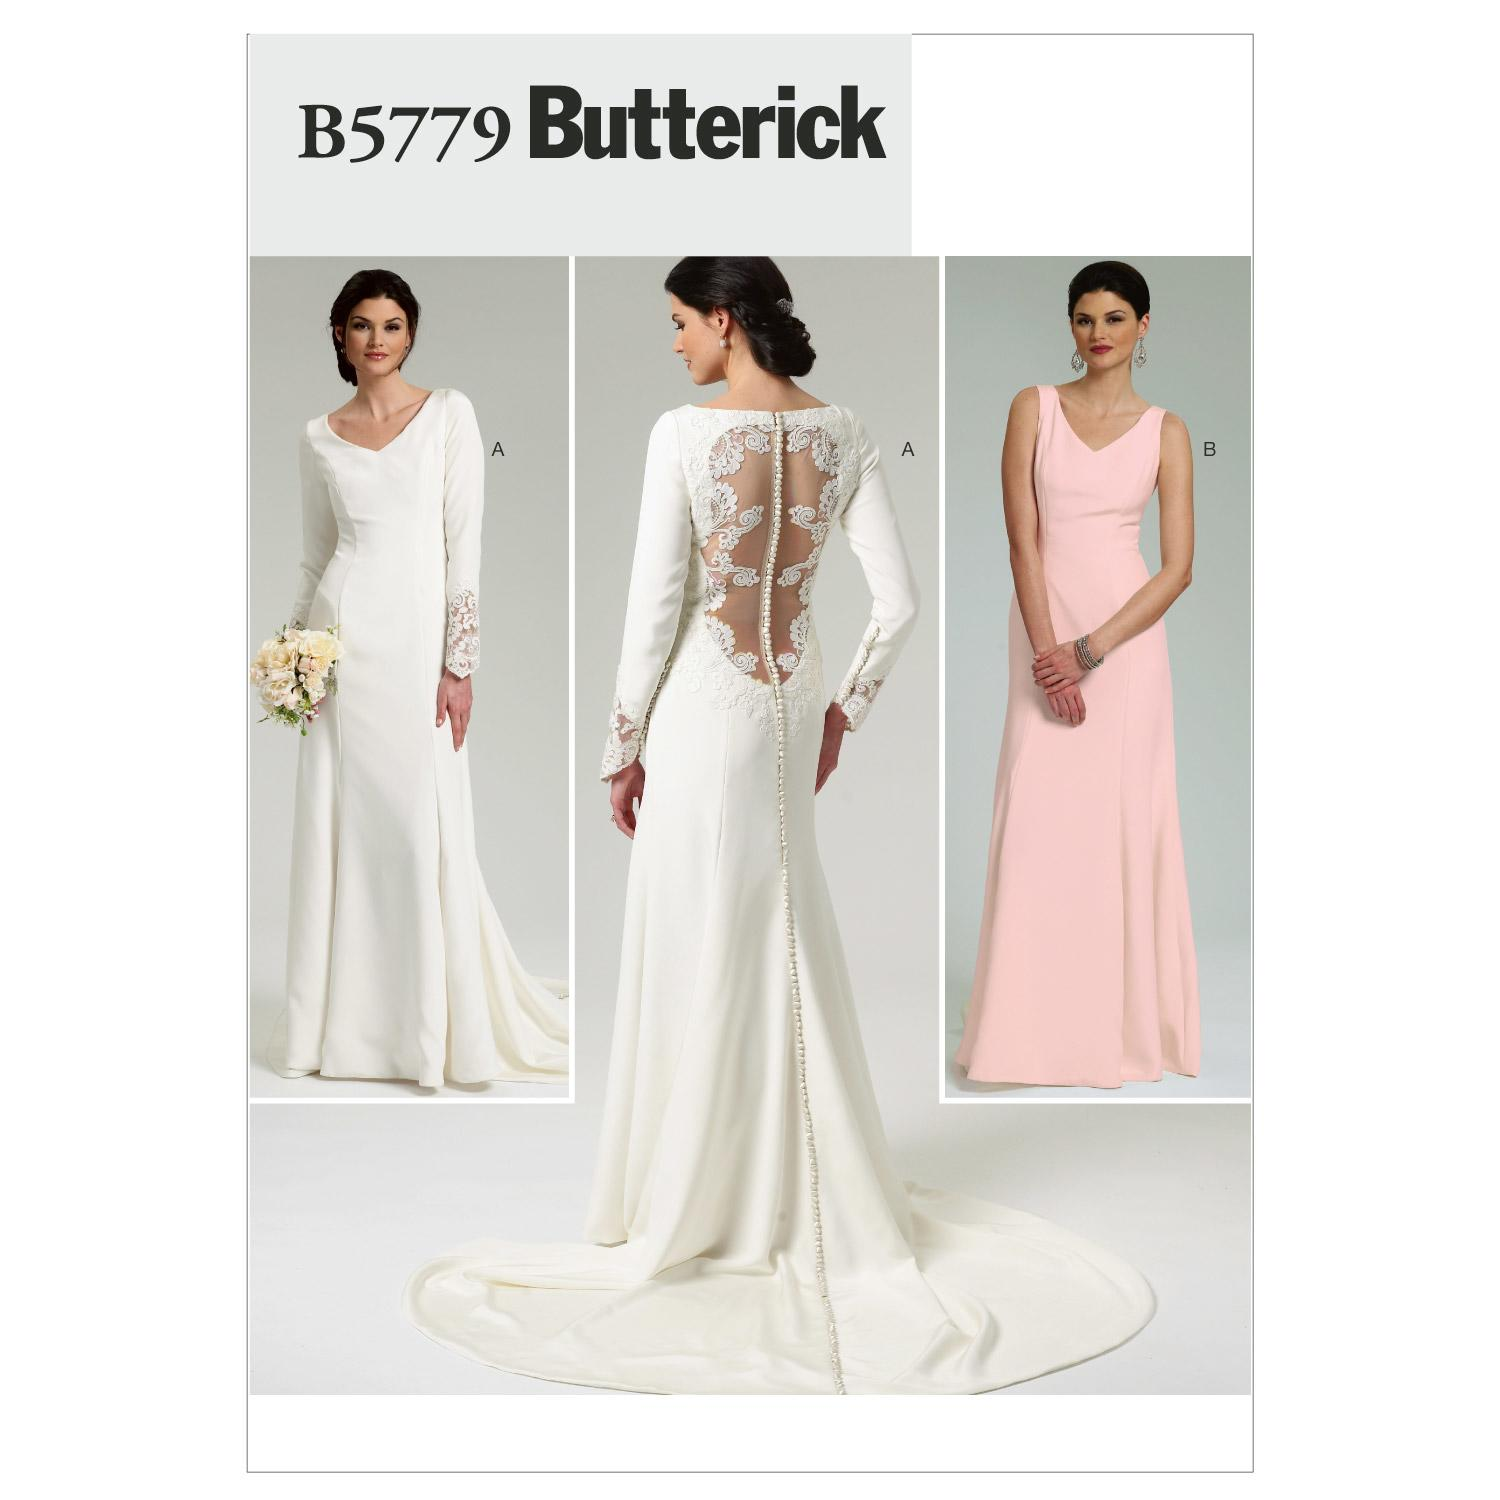 Butterick B5779 Misses' Dress